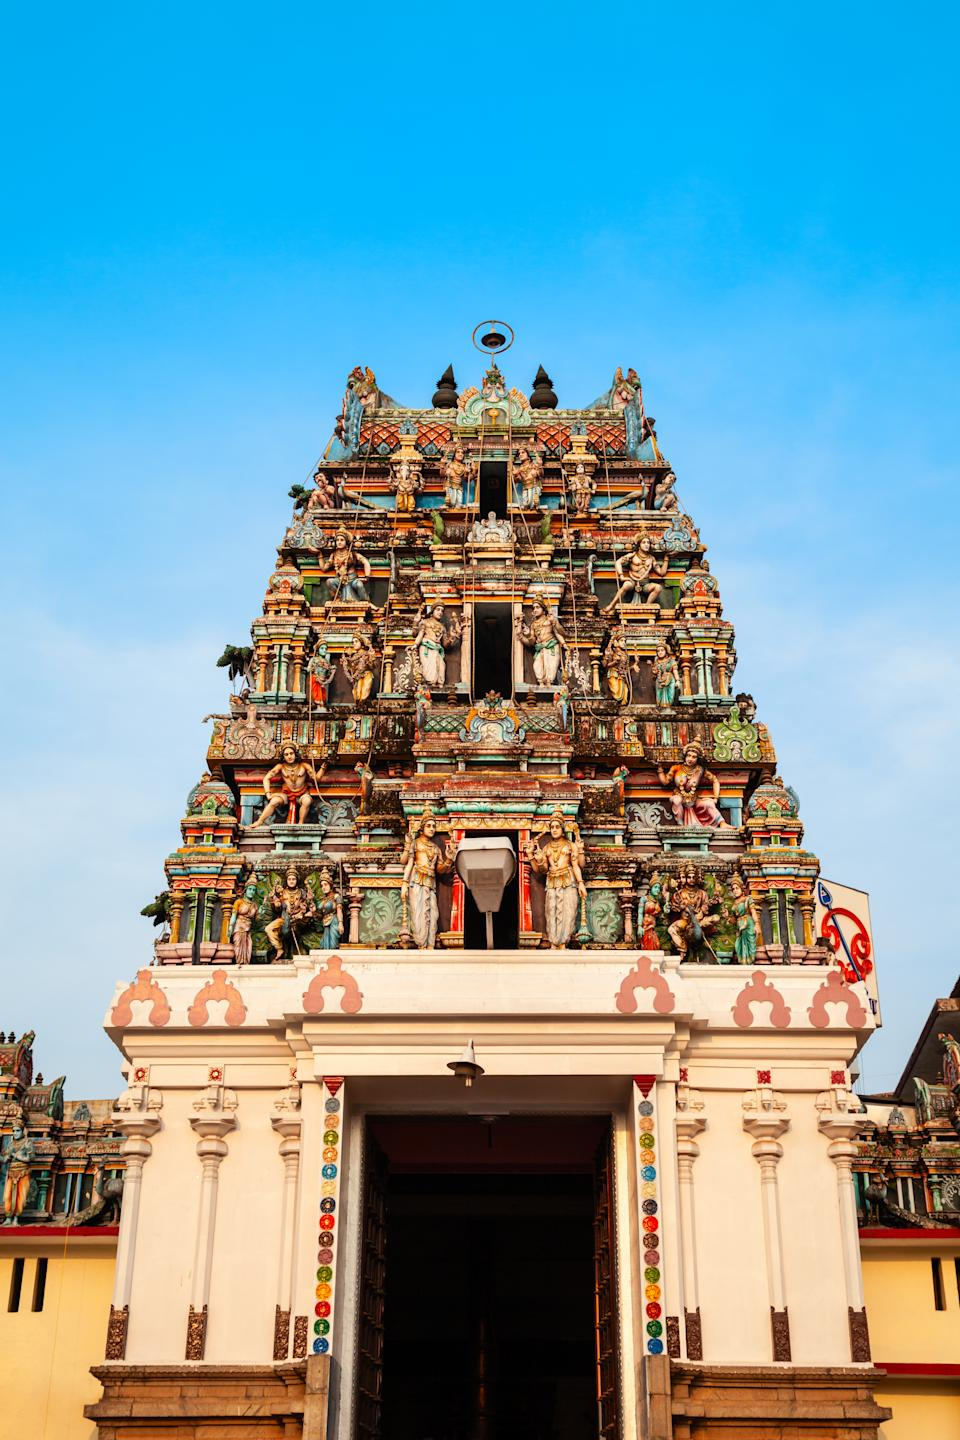 Murugan Temple is a part of Ernakulam Shiva Temple, one of the major temples of Kerala located in Cochin city, India